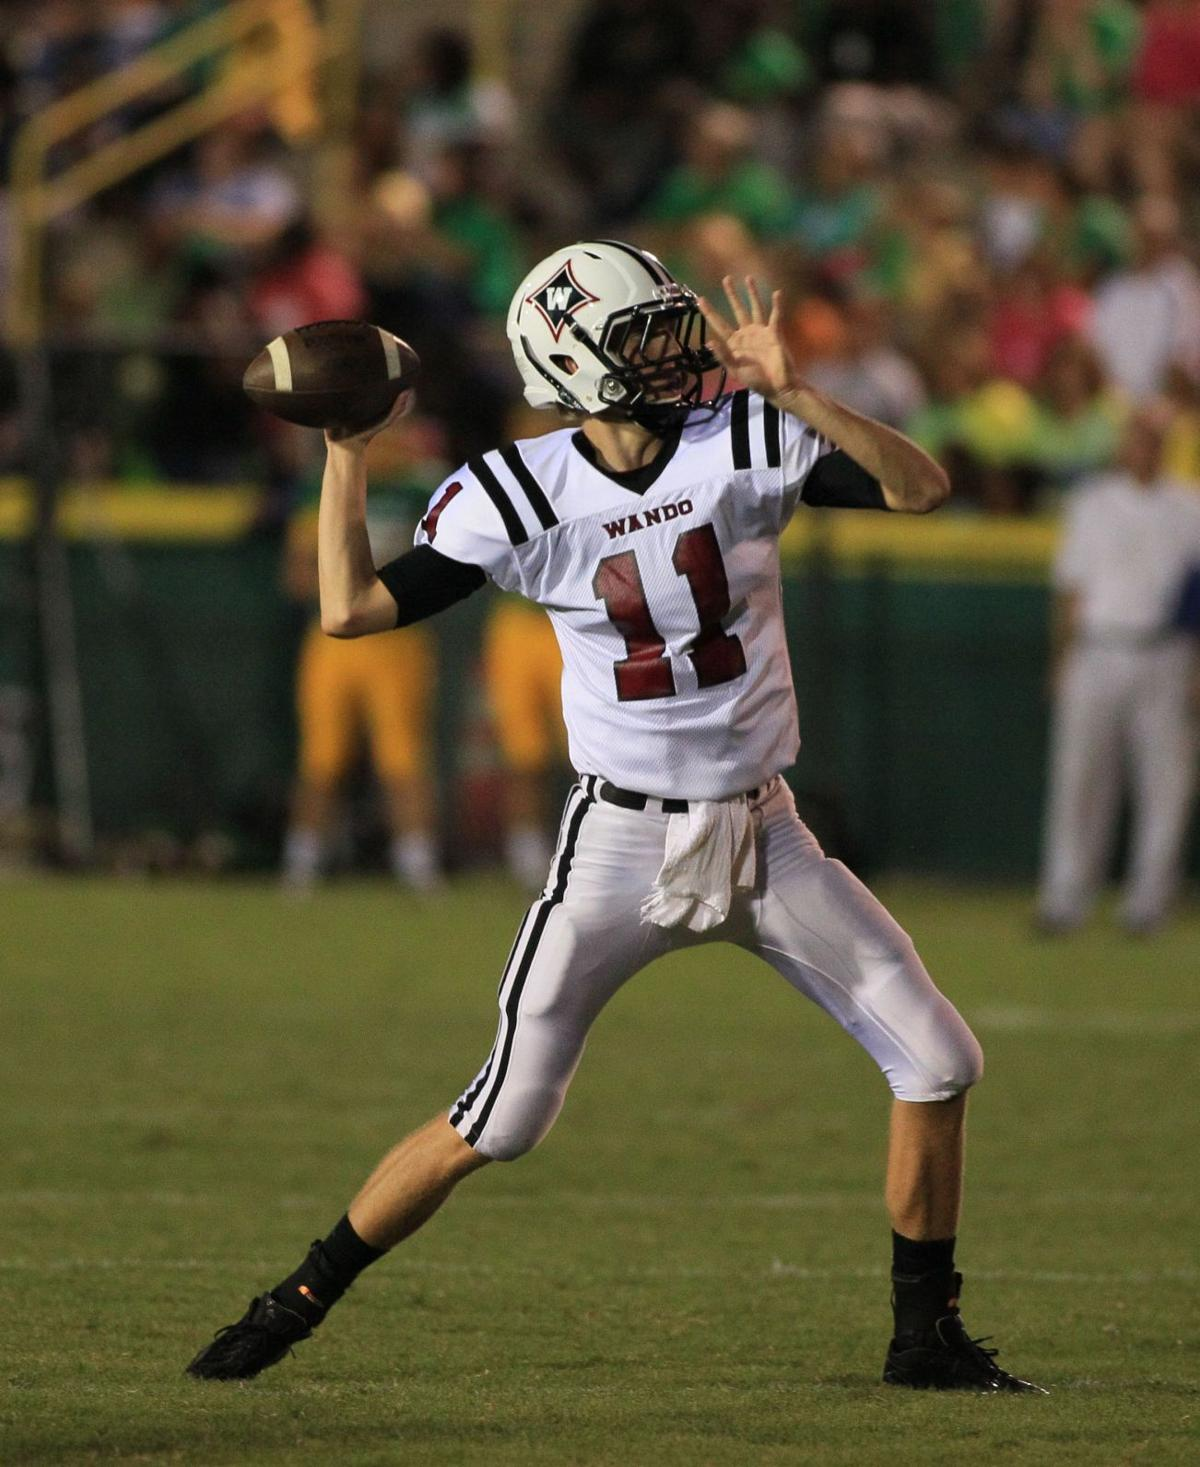 Wando rallies in second half to beat Cane Bay